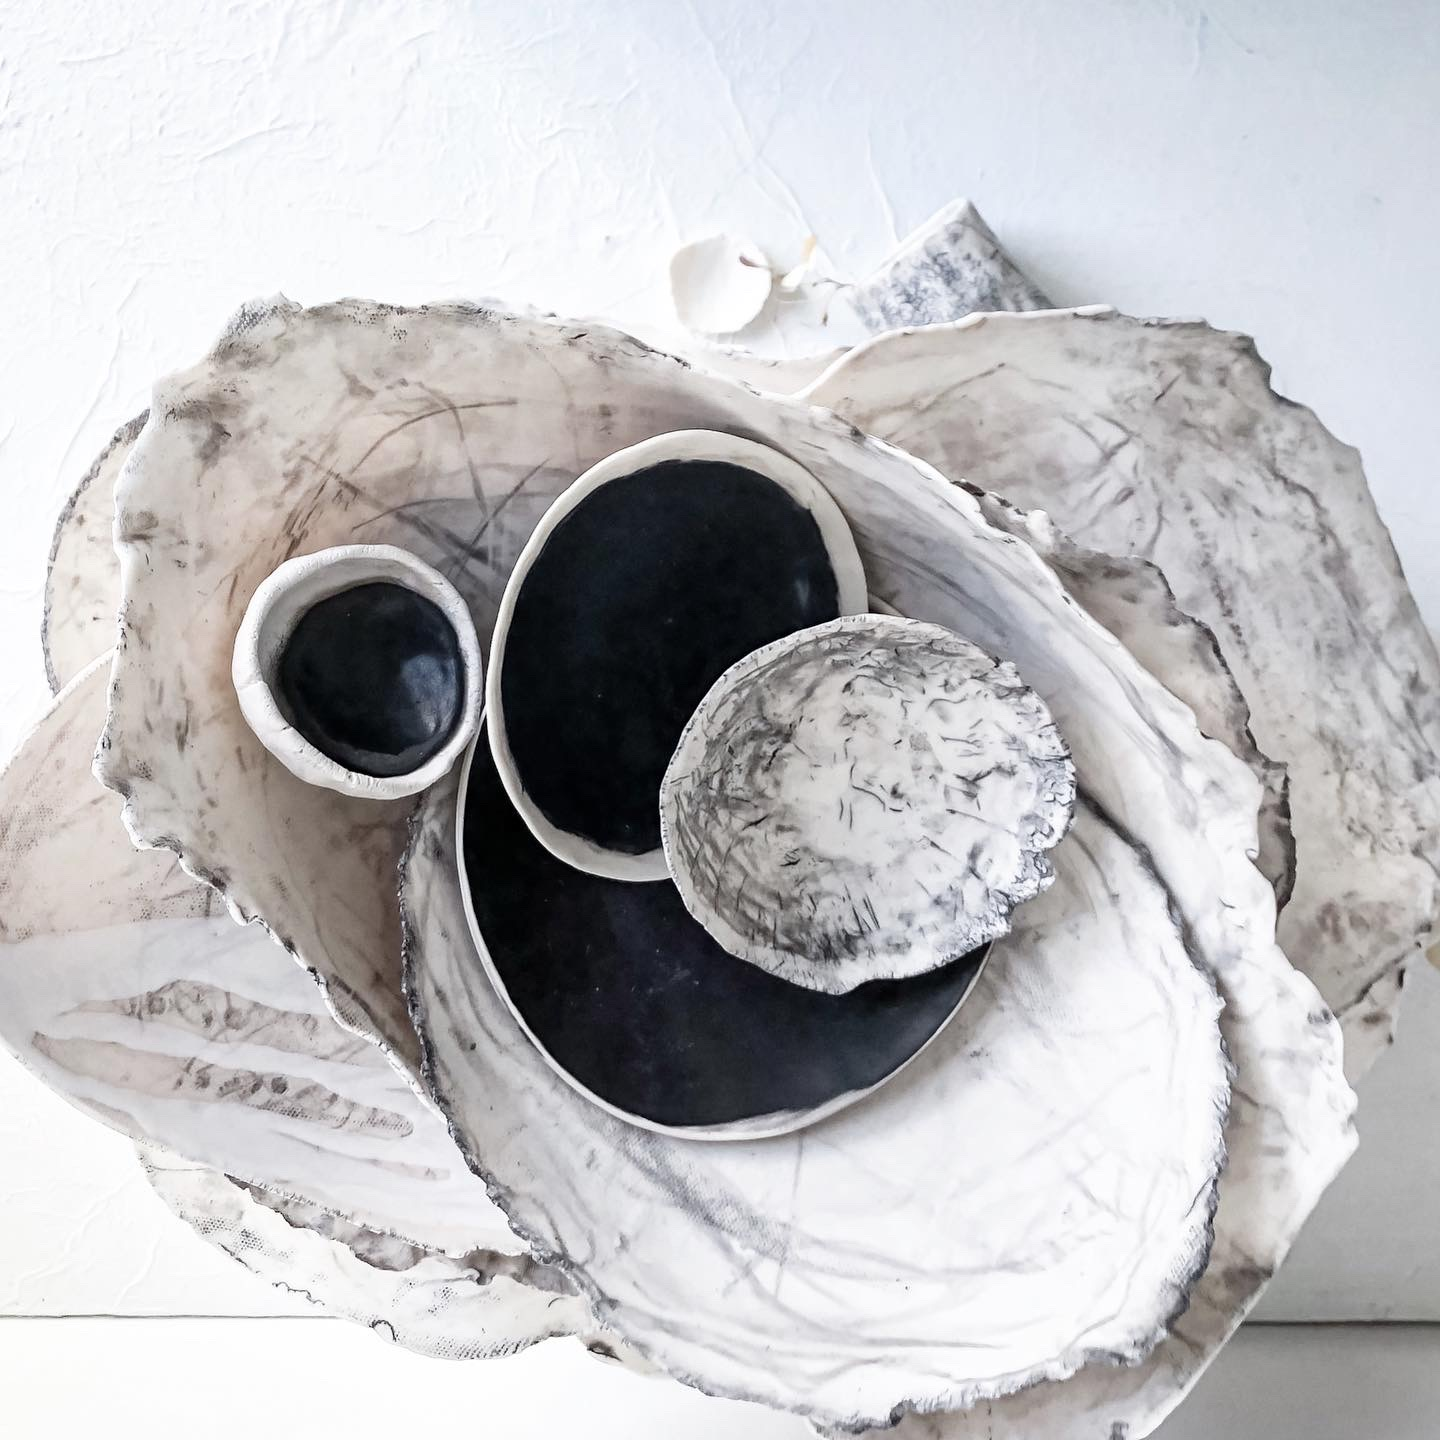 Ceramics by Heather Waugh Pitts